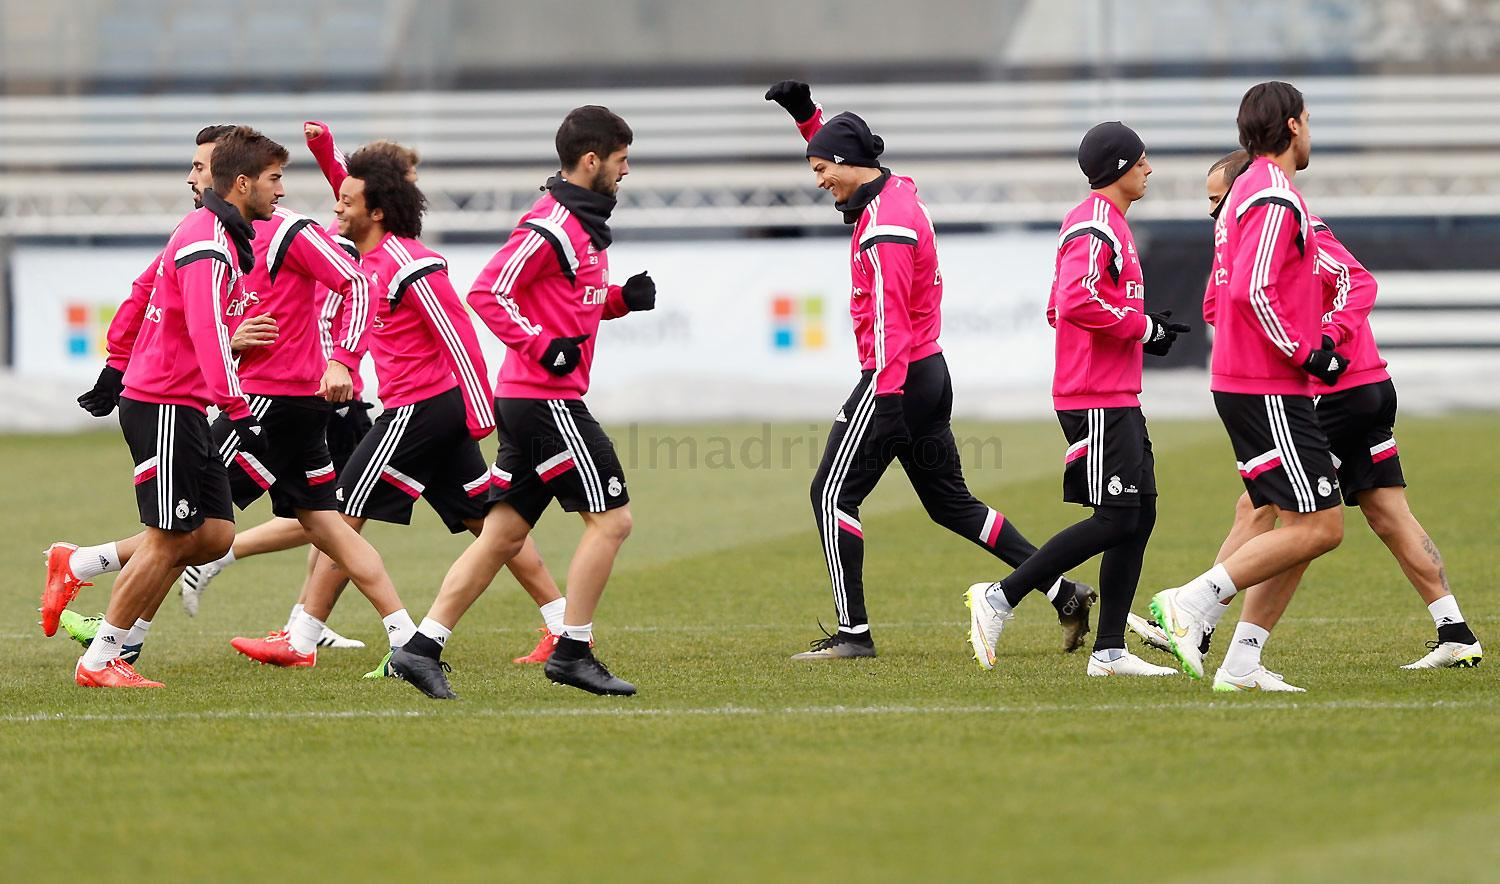 Real Madrid - Entrenamiento del Real Madrid - 02-02-2015